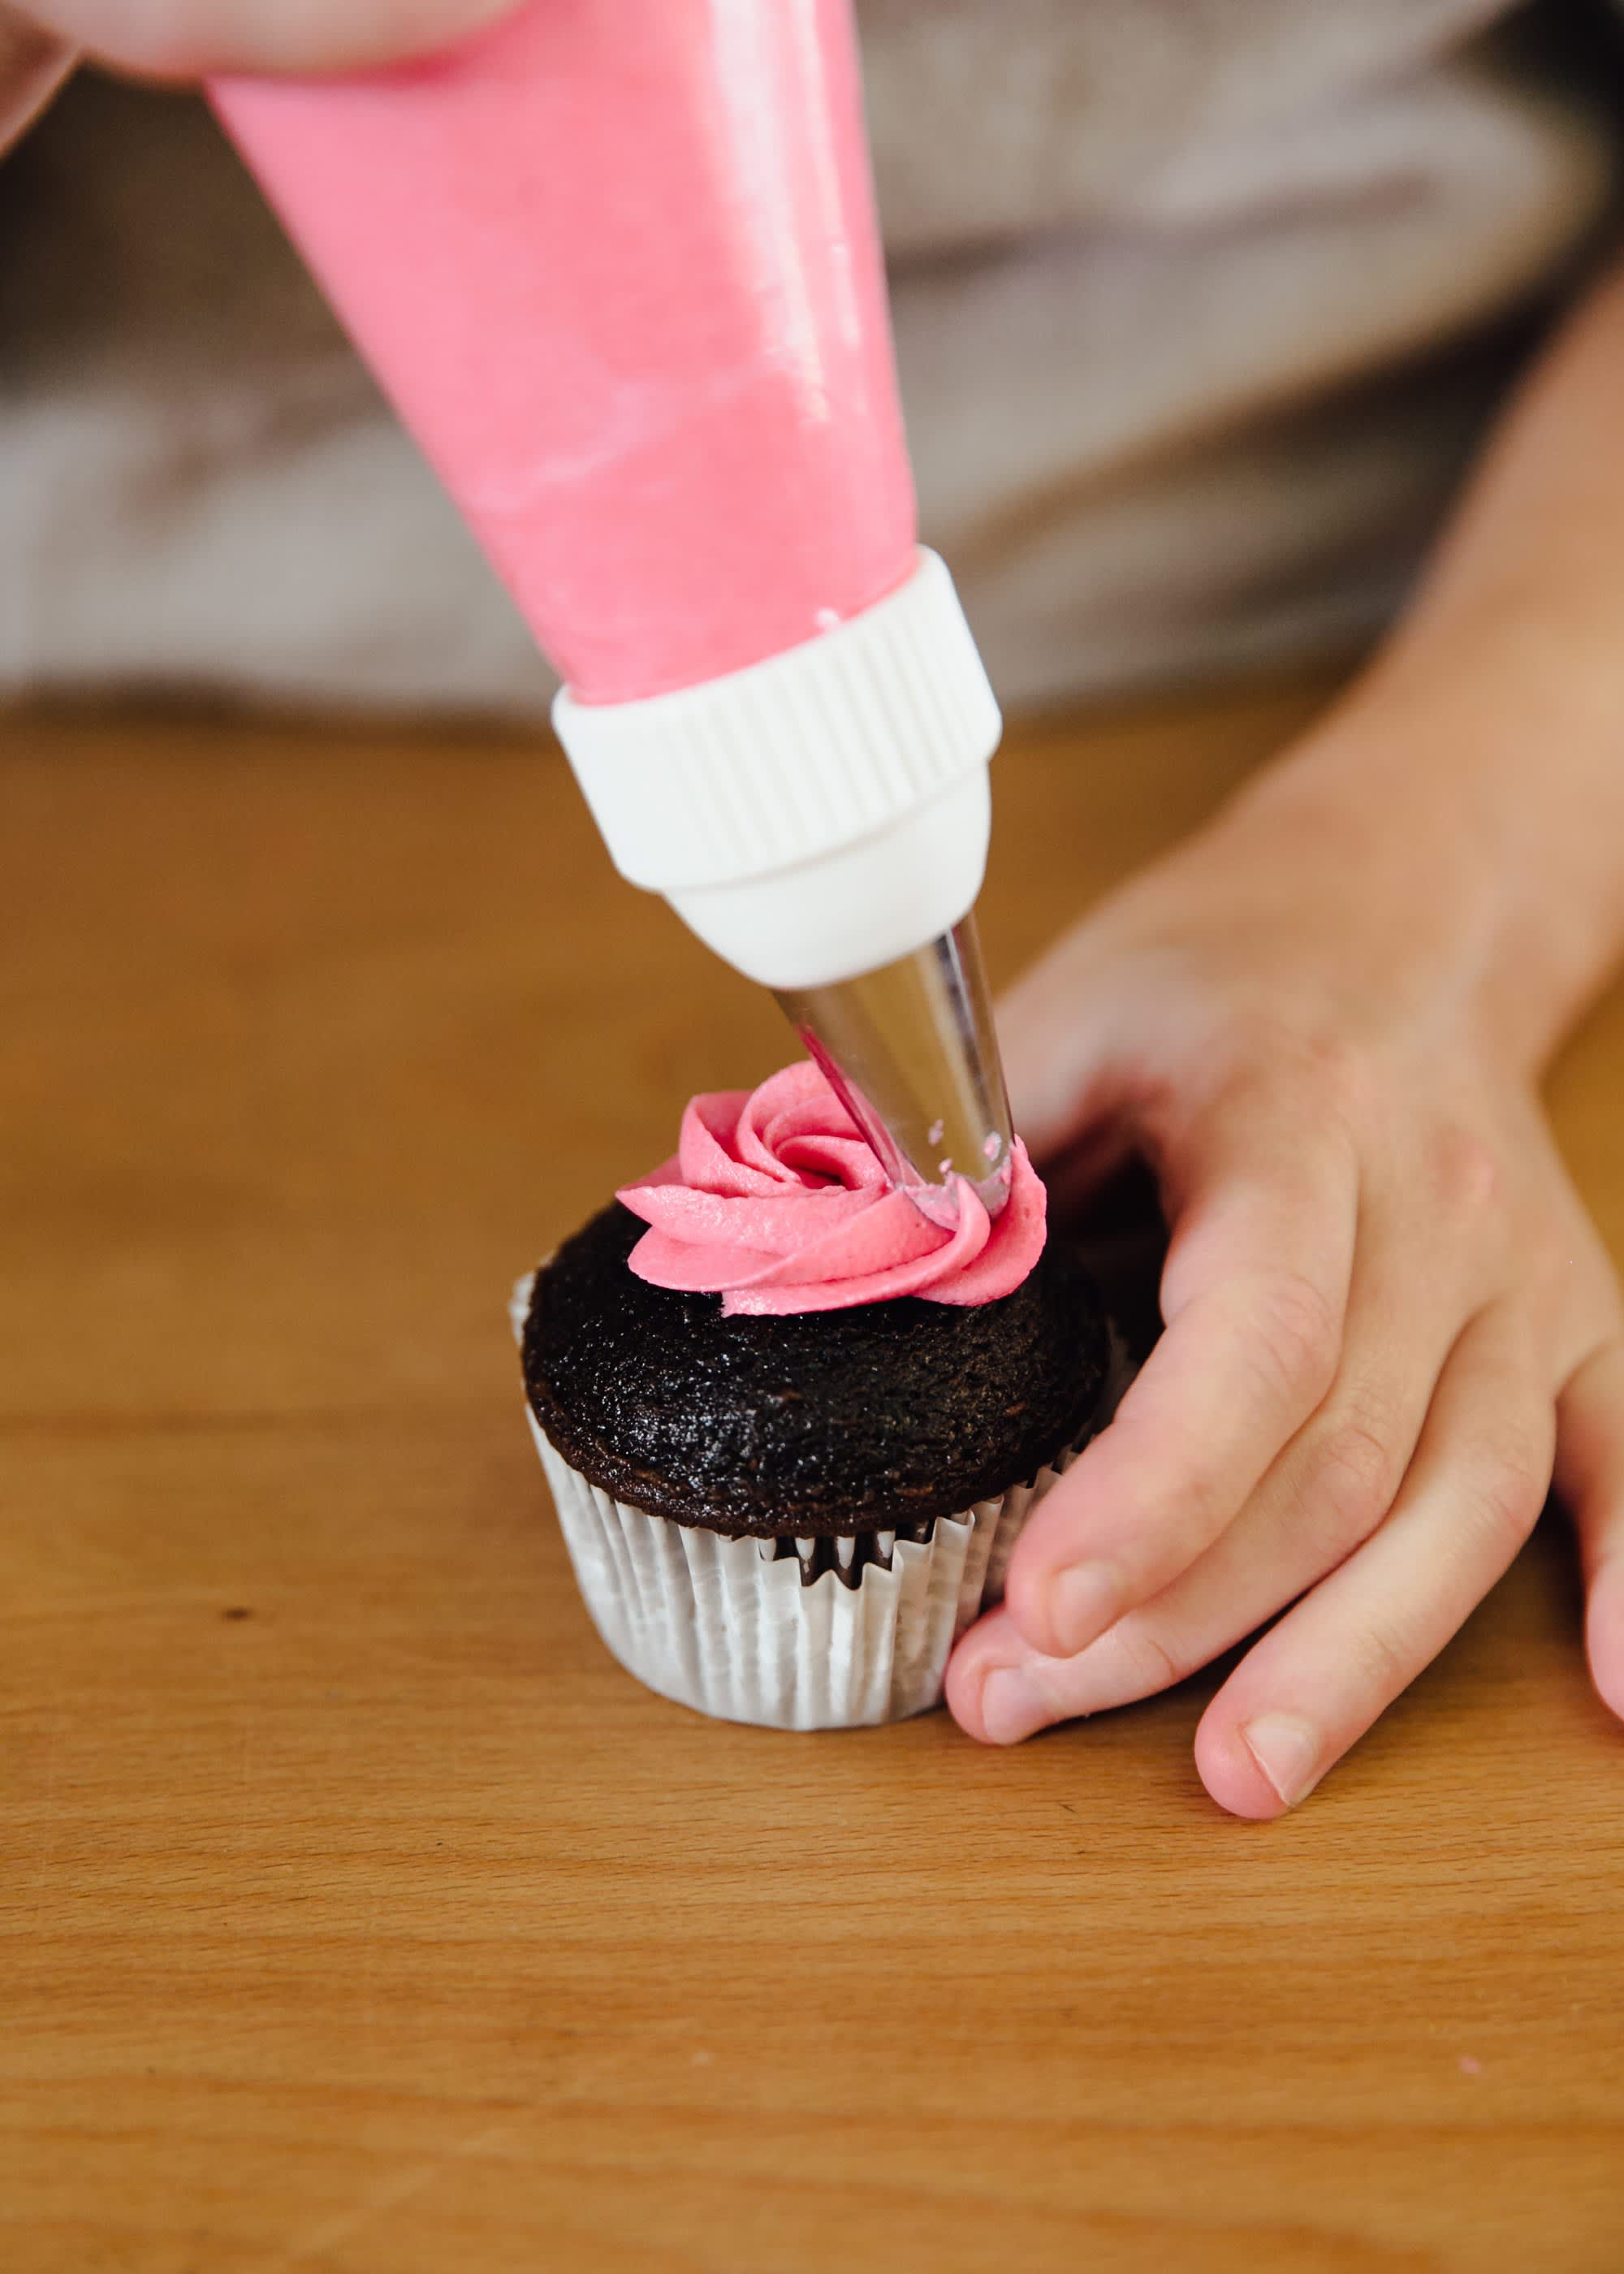 How To Frost a Cupcake